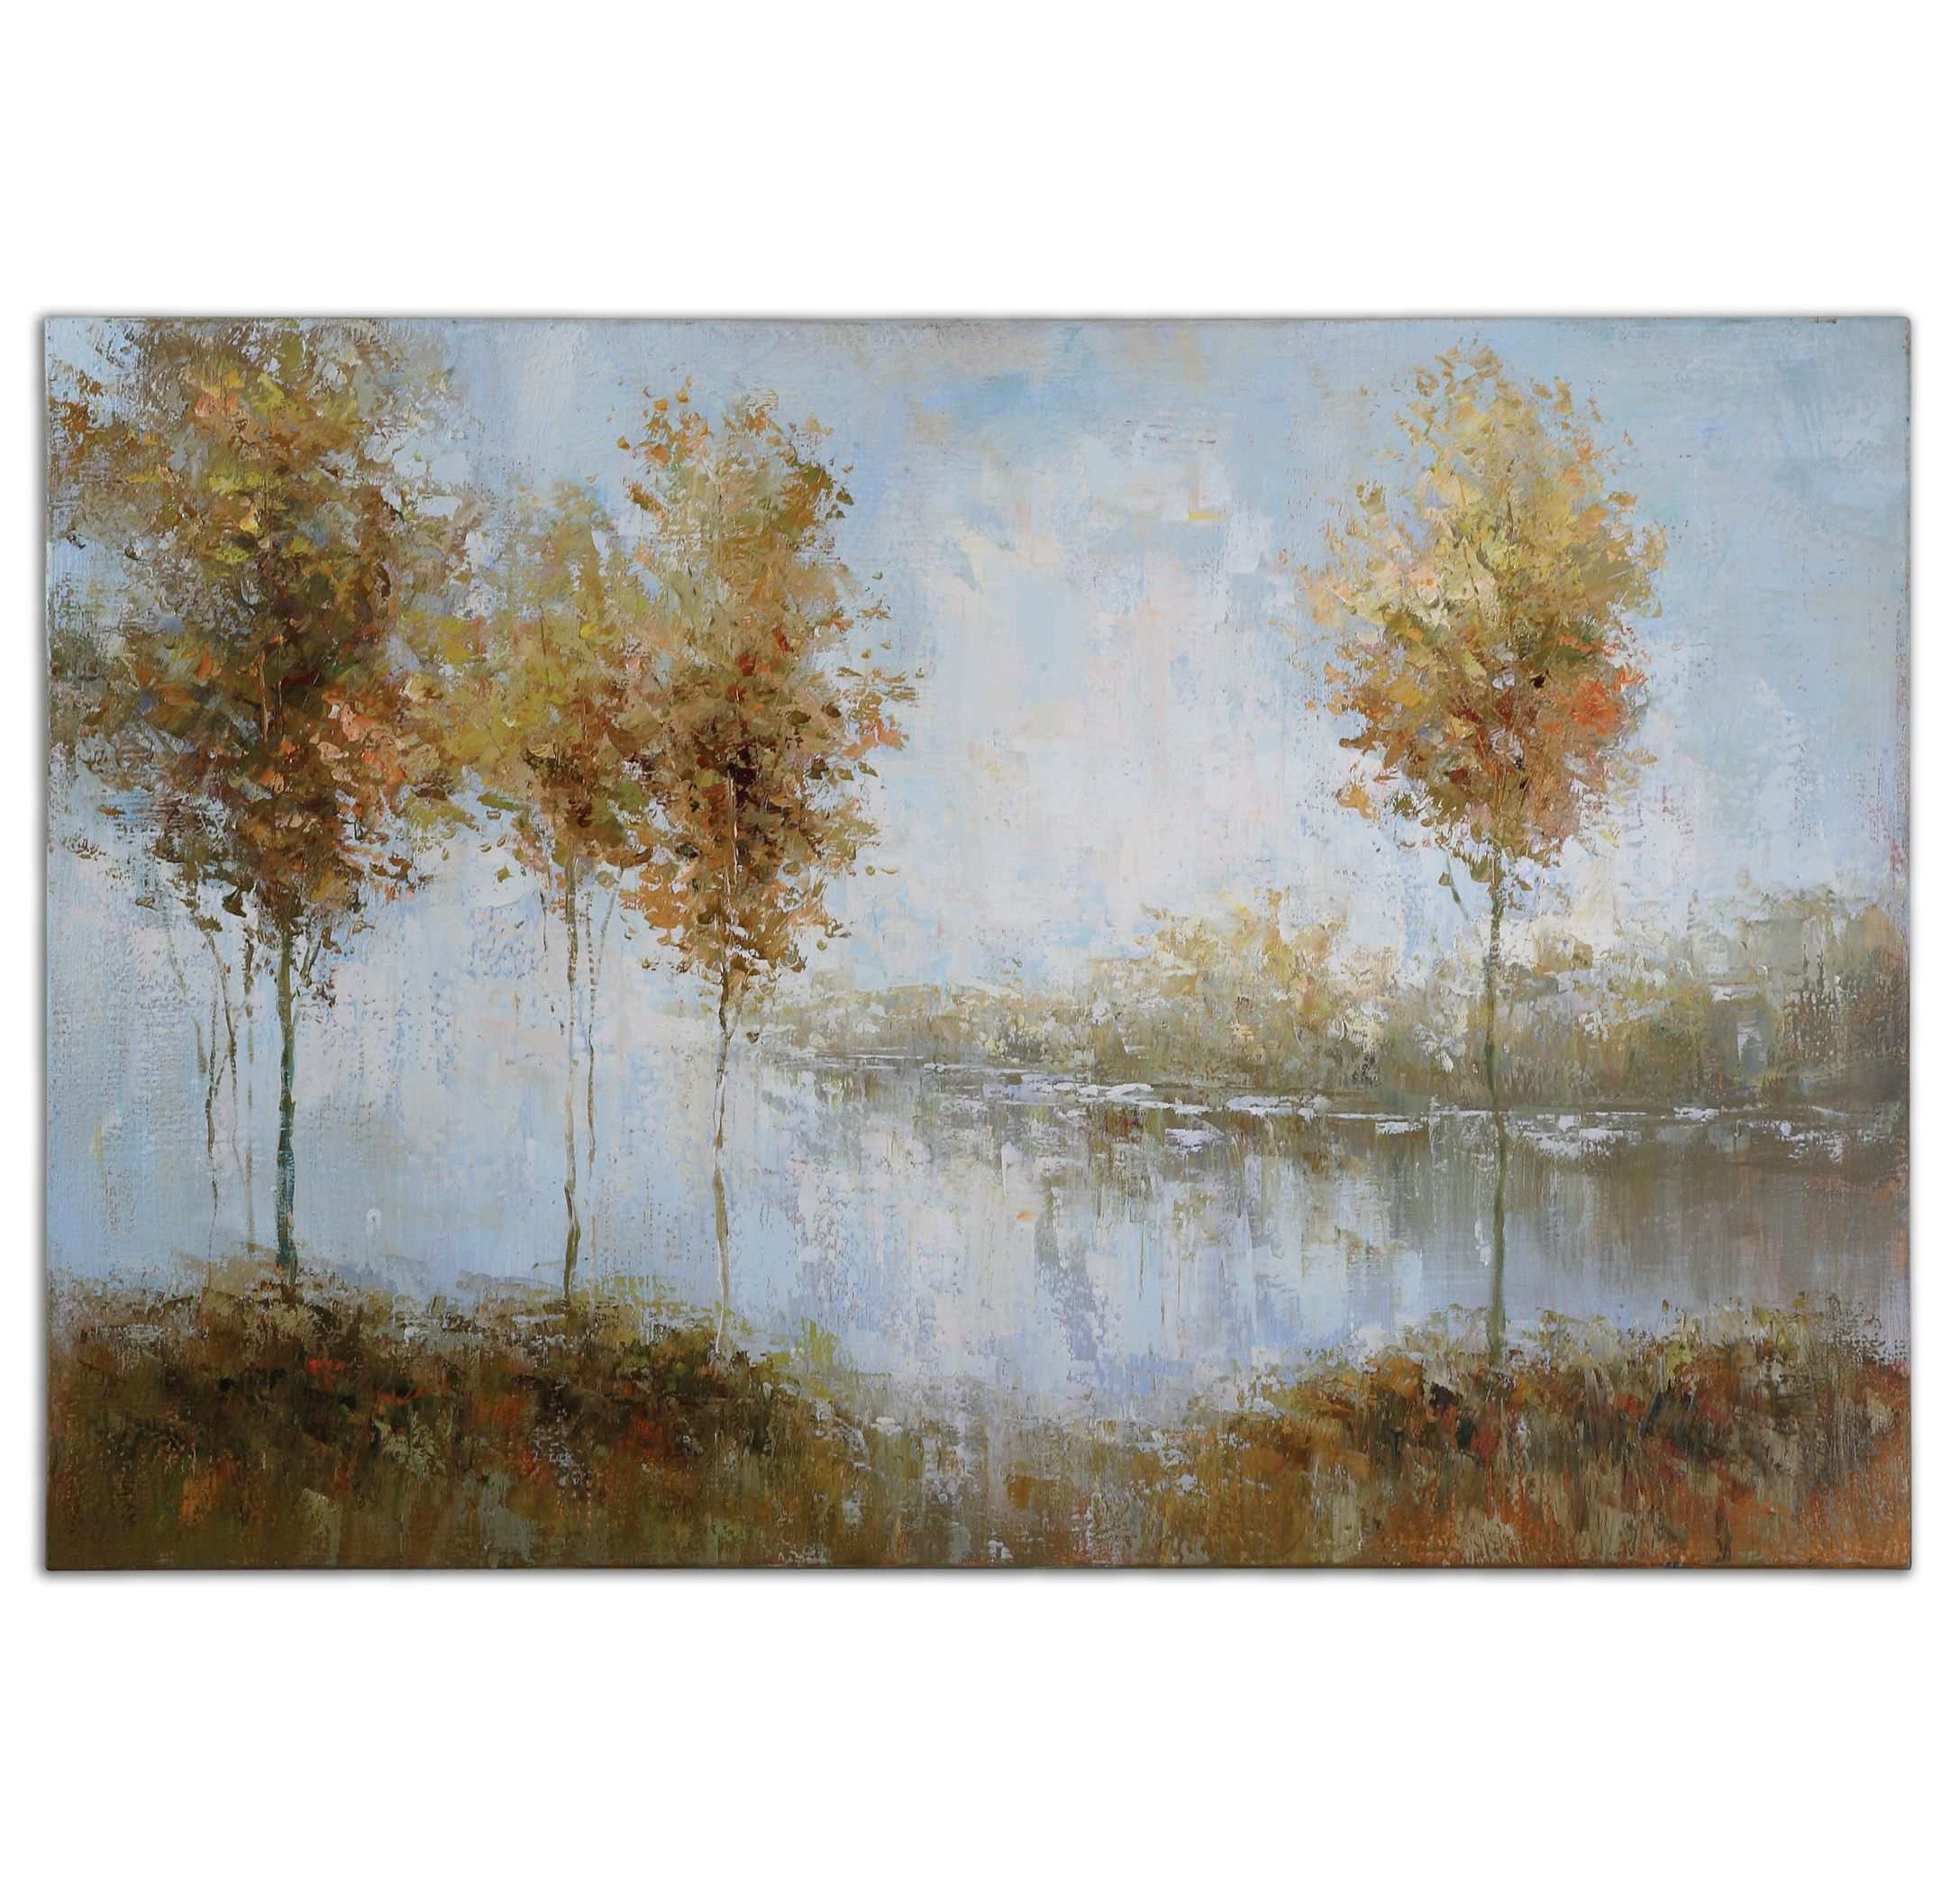 Uttermost 34266 View Of The Lake Art